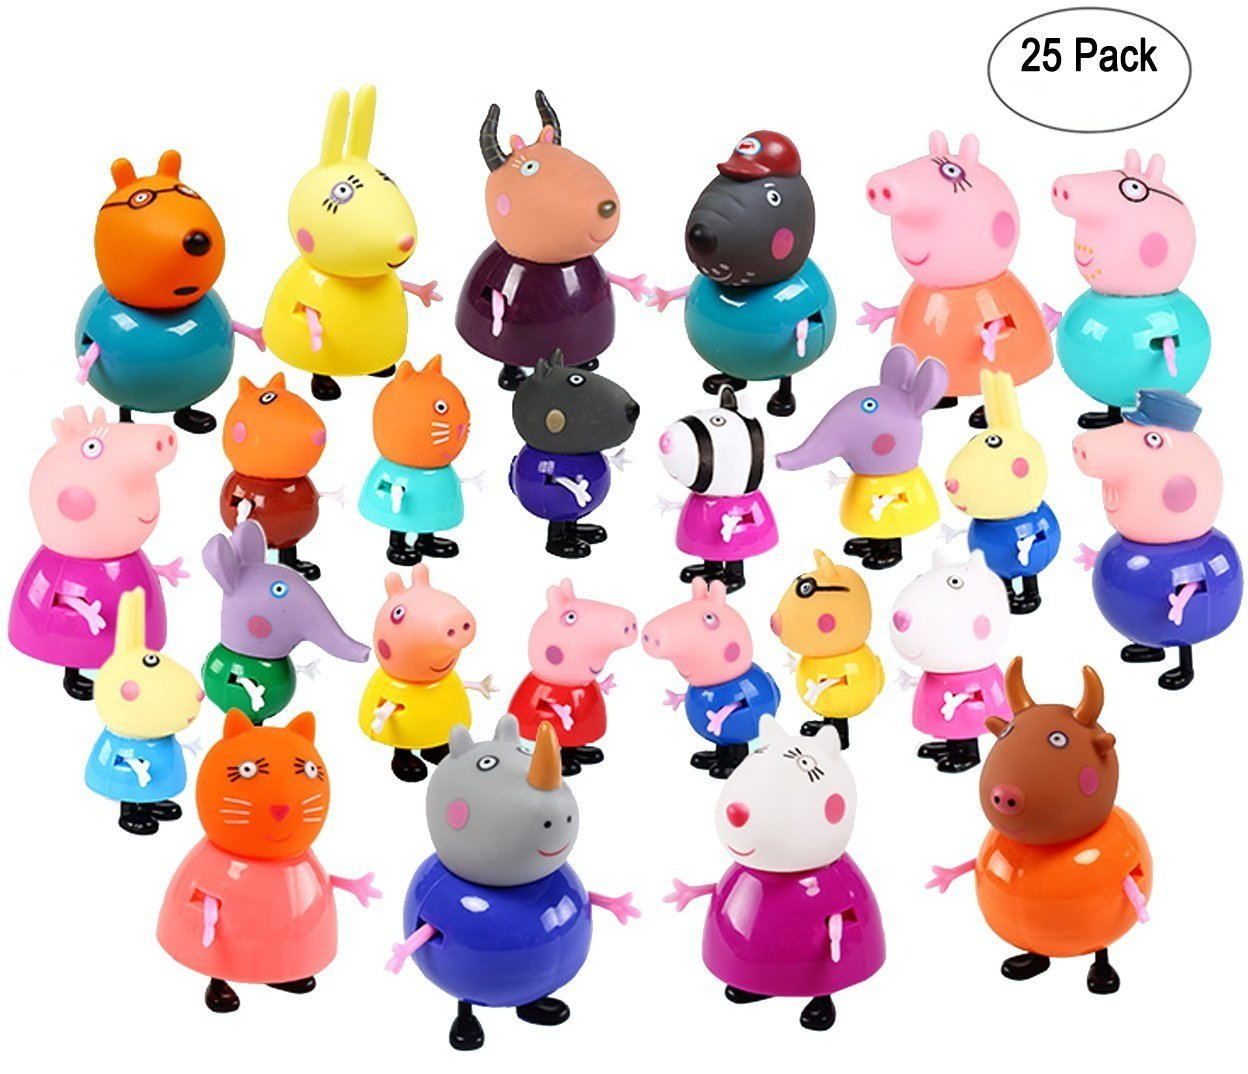 New 25 Pcs Peppa Pig Different Best Model Figure Toys For Kids product image